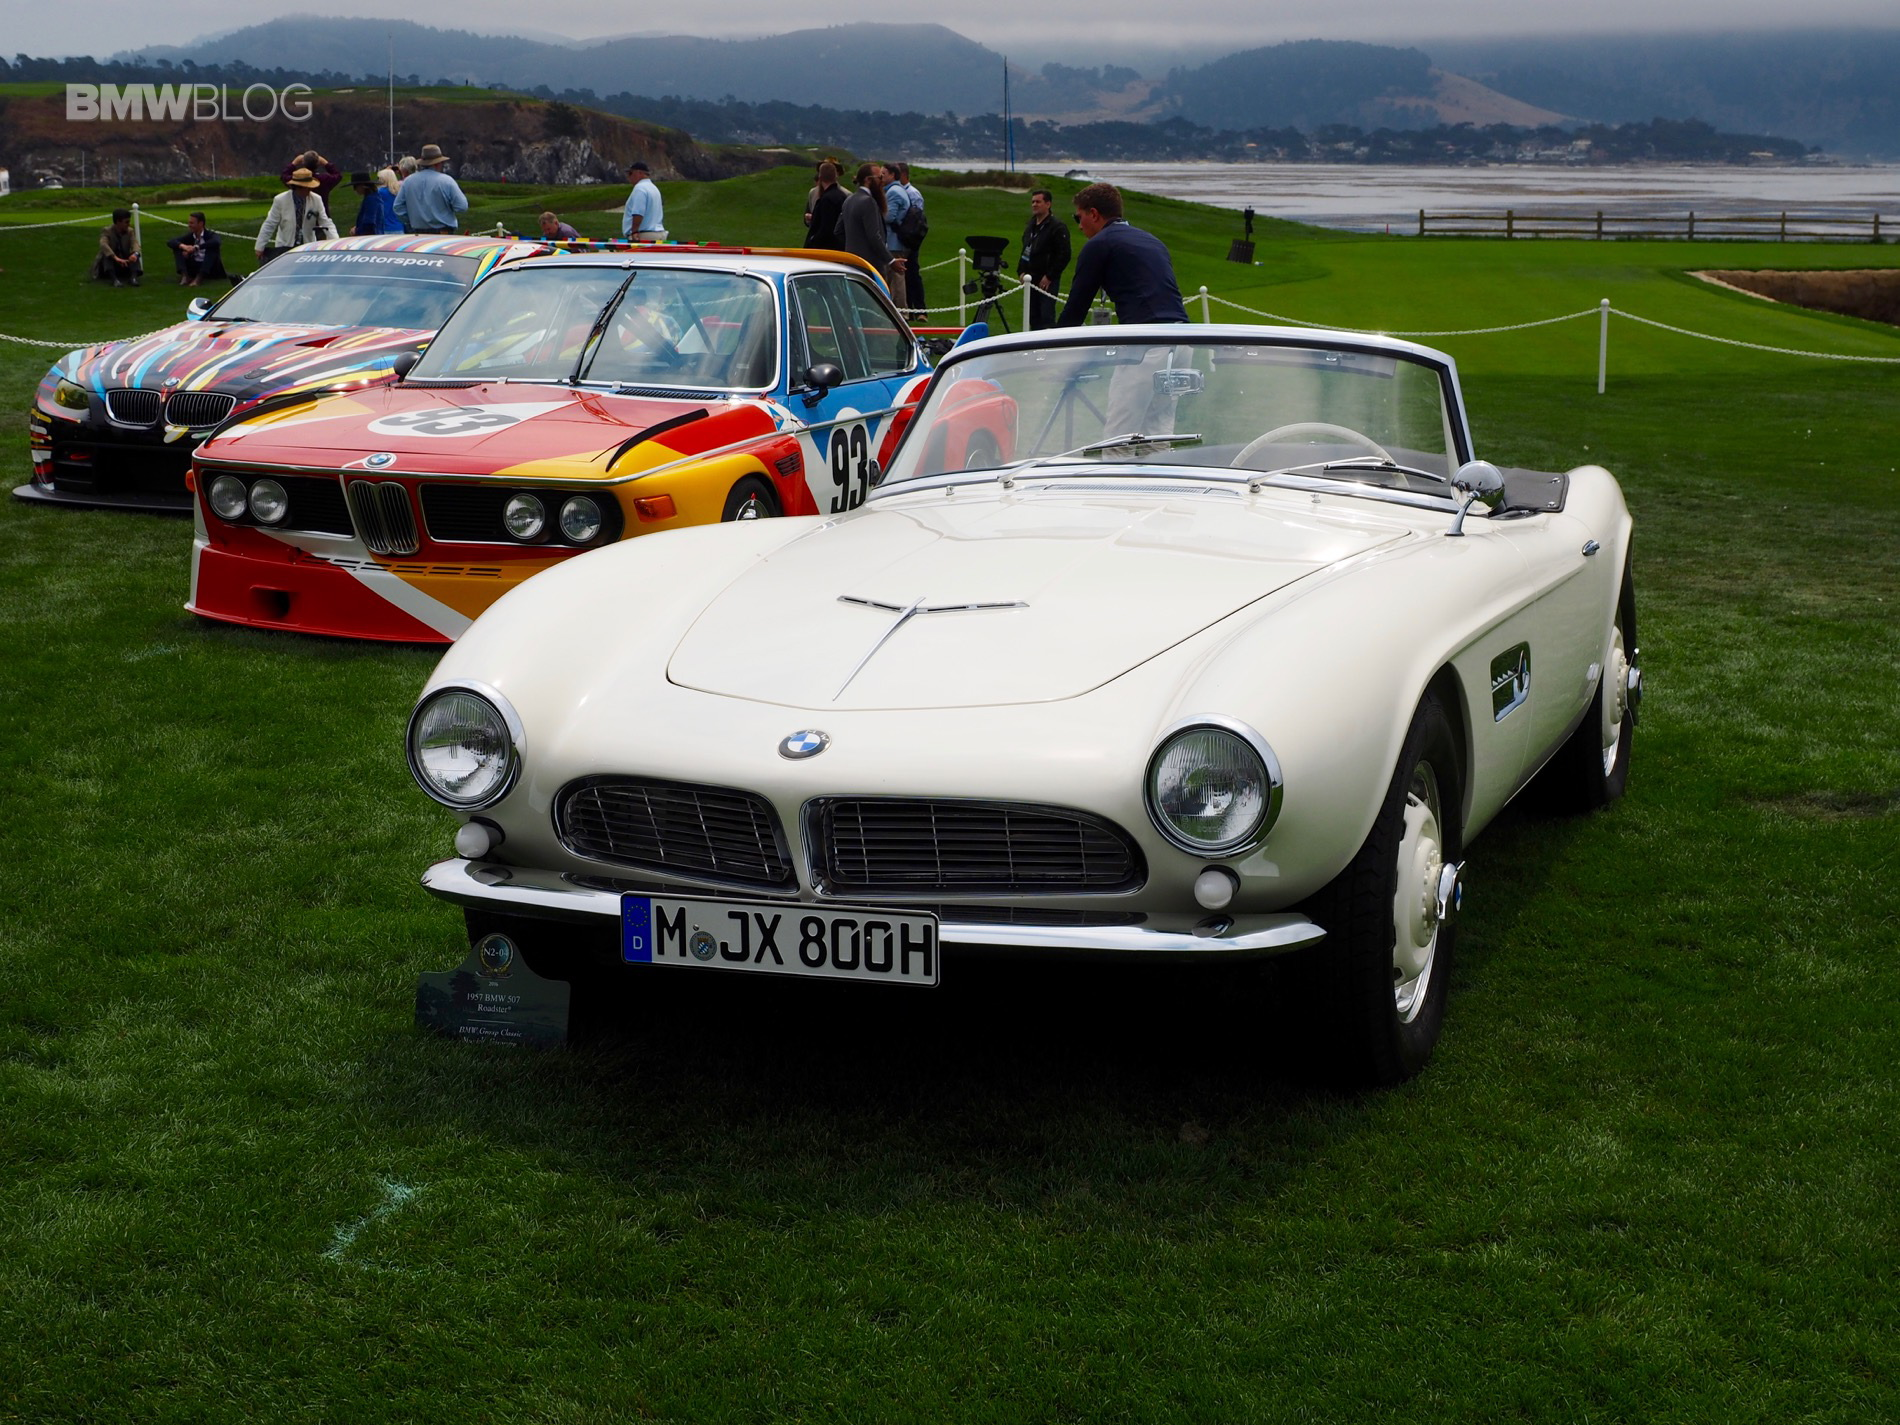 BMW 507 Pebble Beach 1